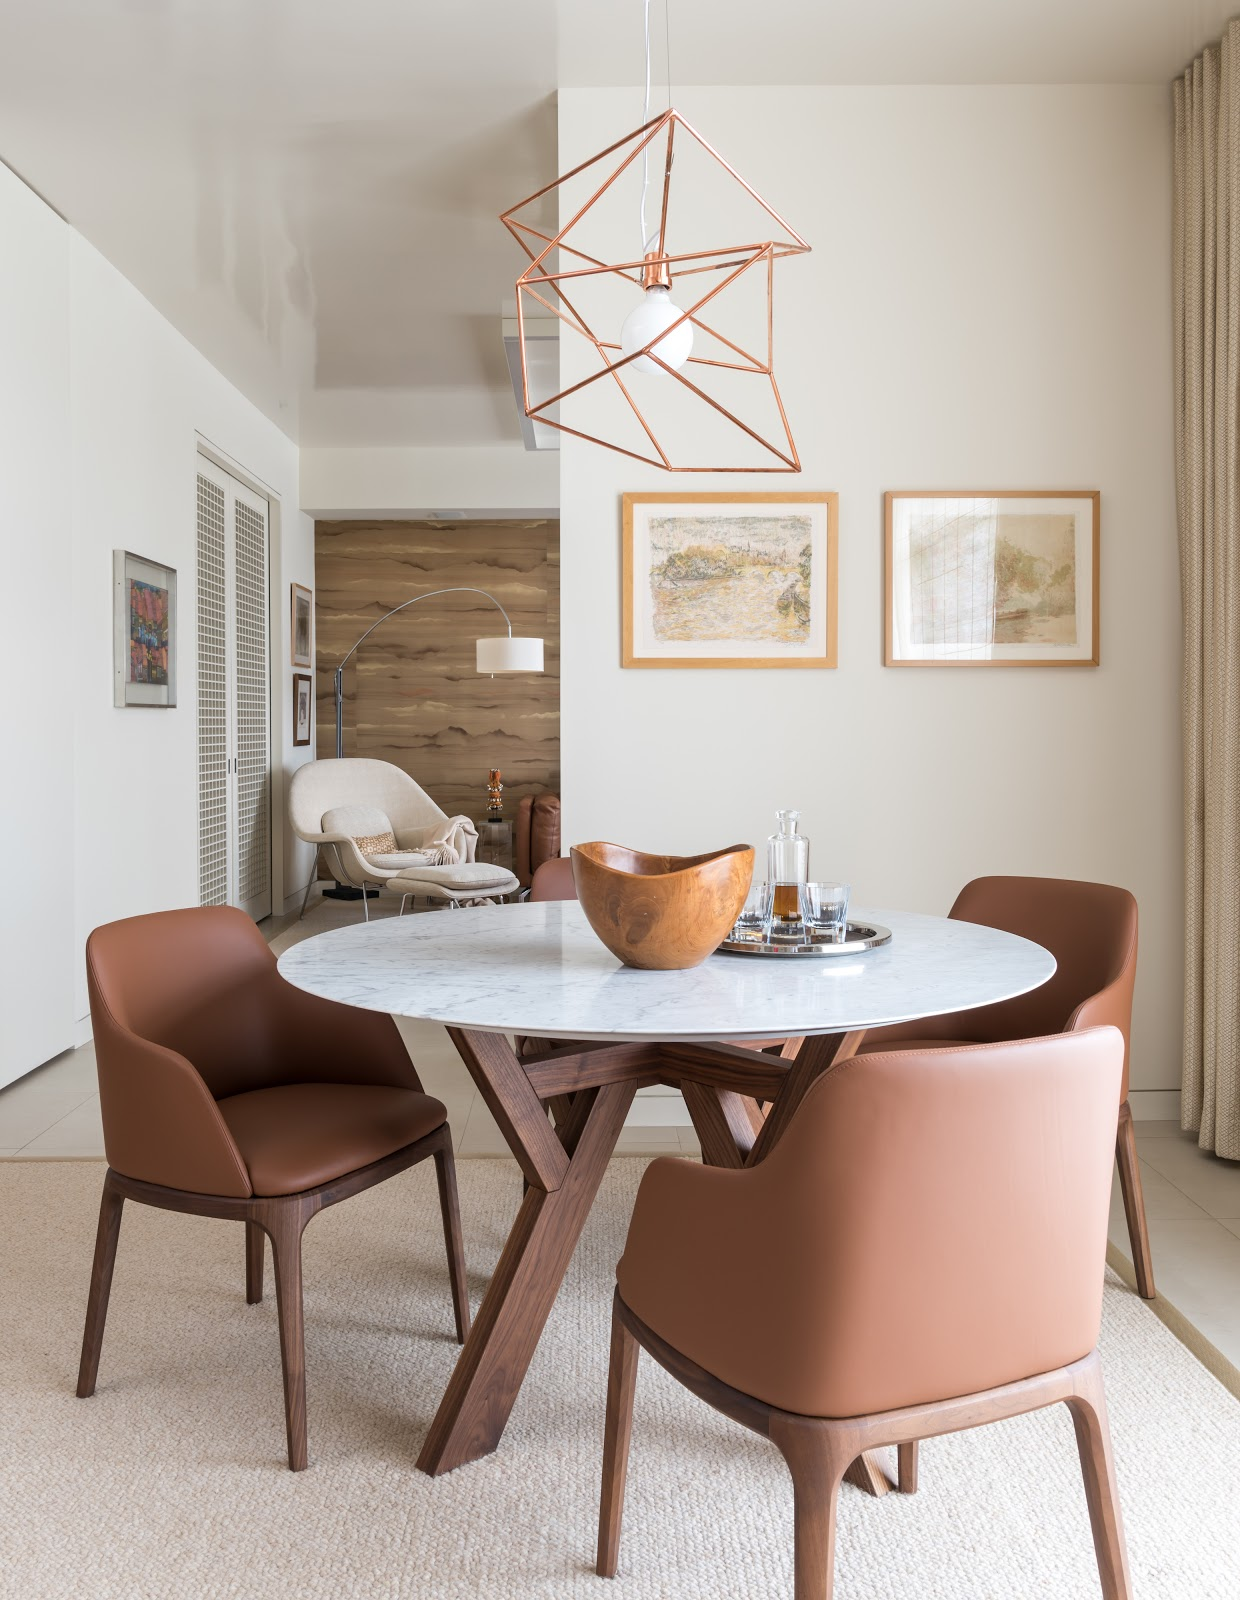 earthy collected high-rise breakfast nook with copper metallic geometric lighting - laura u interior design